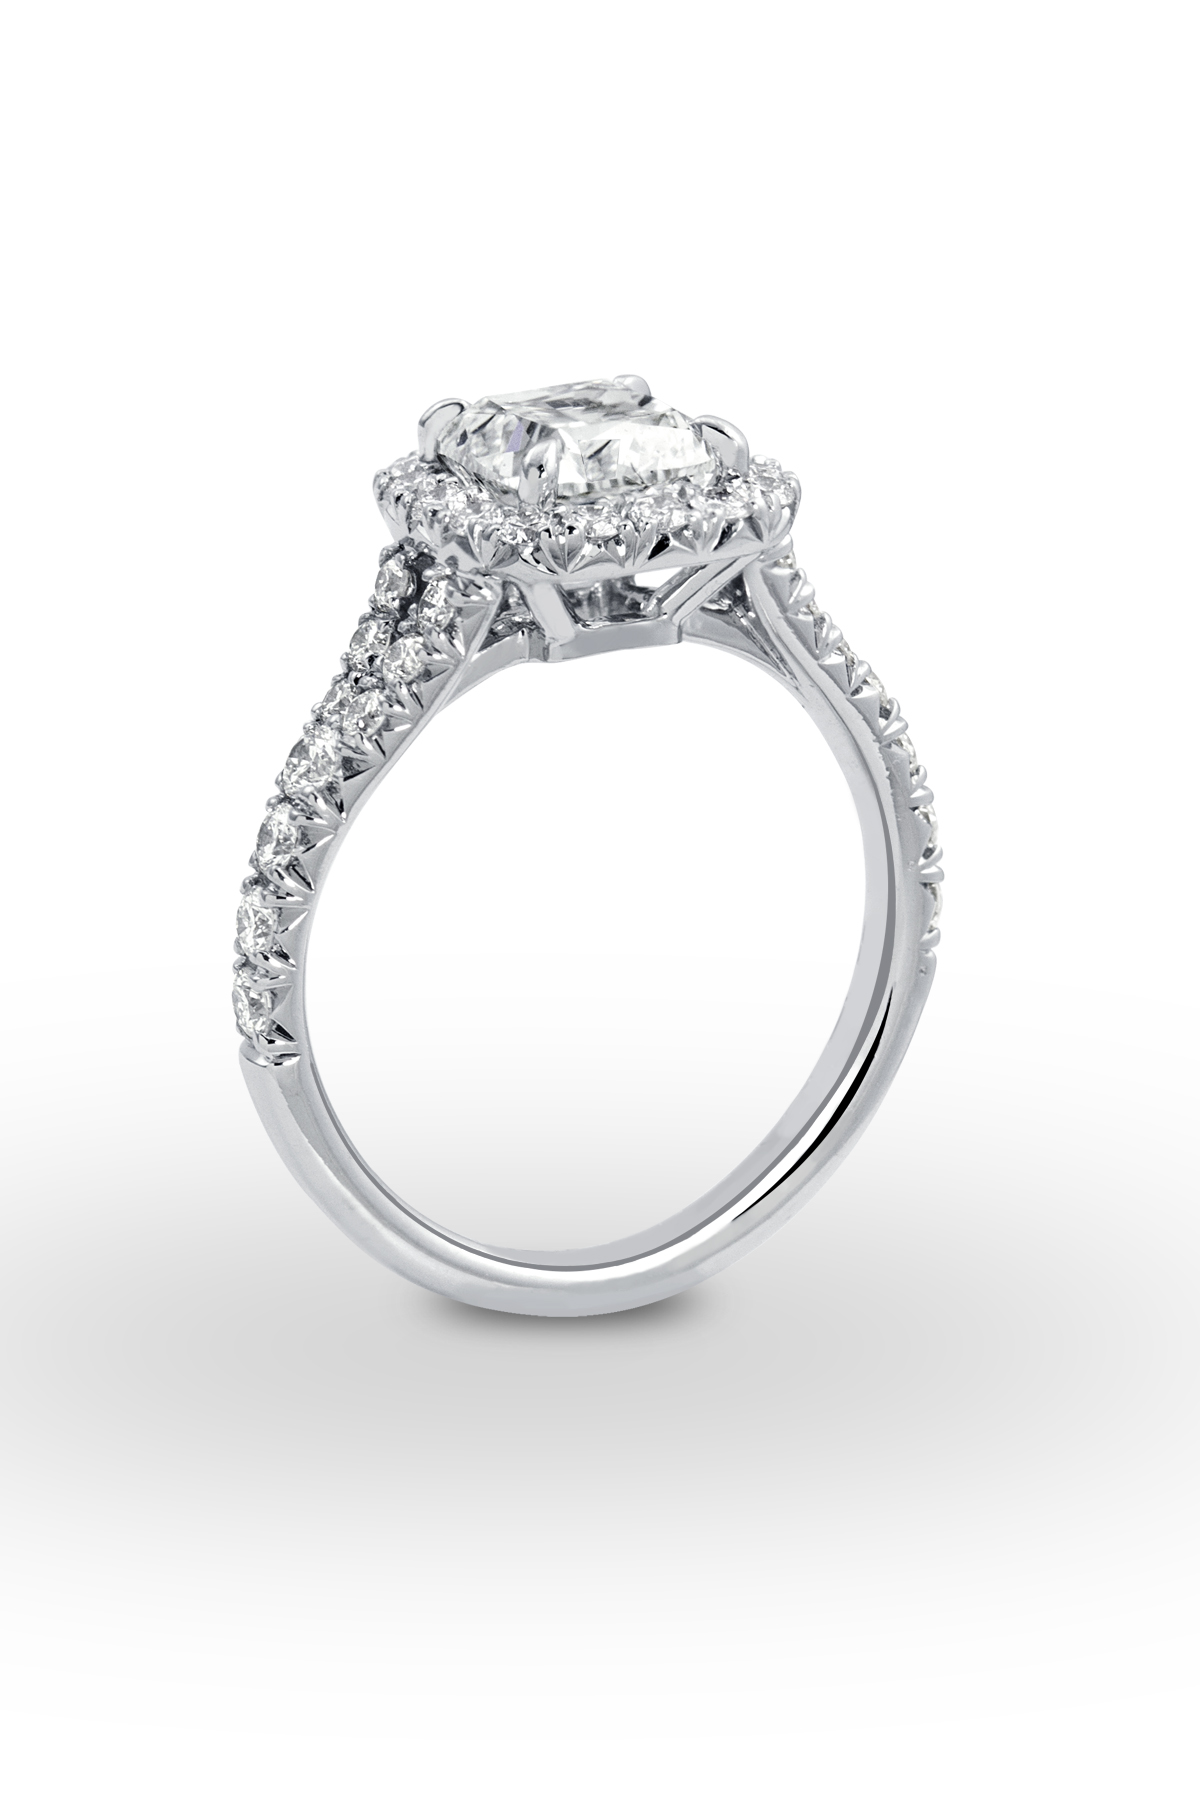 Cushion Halo Ring Side View.jpg